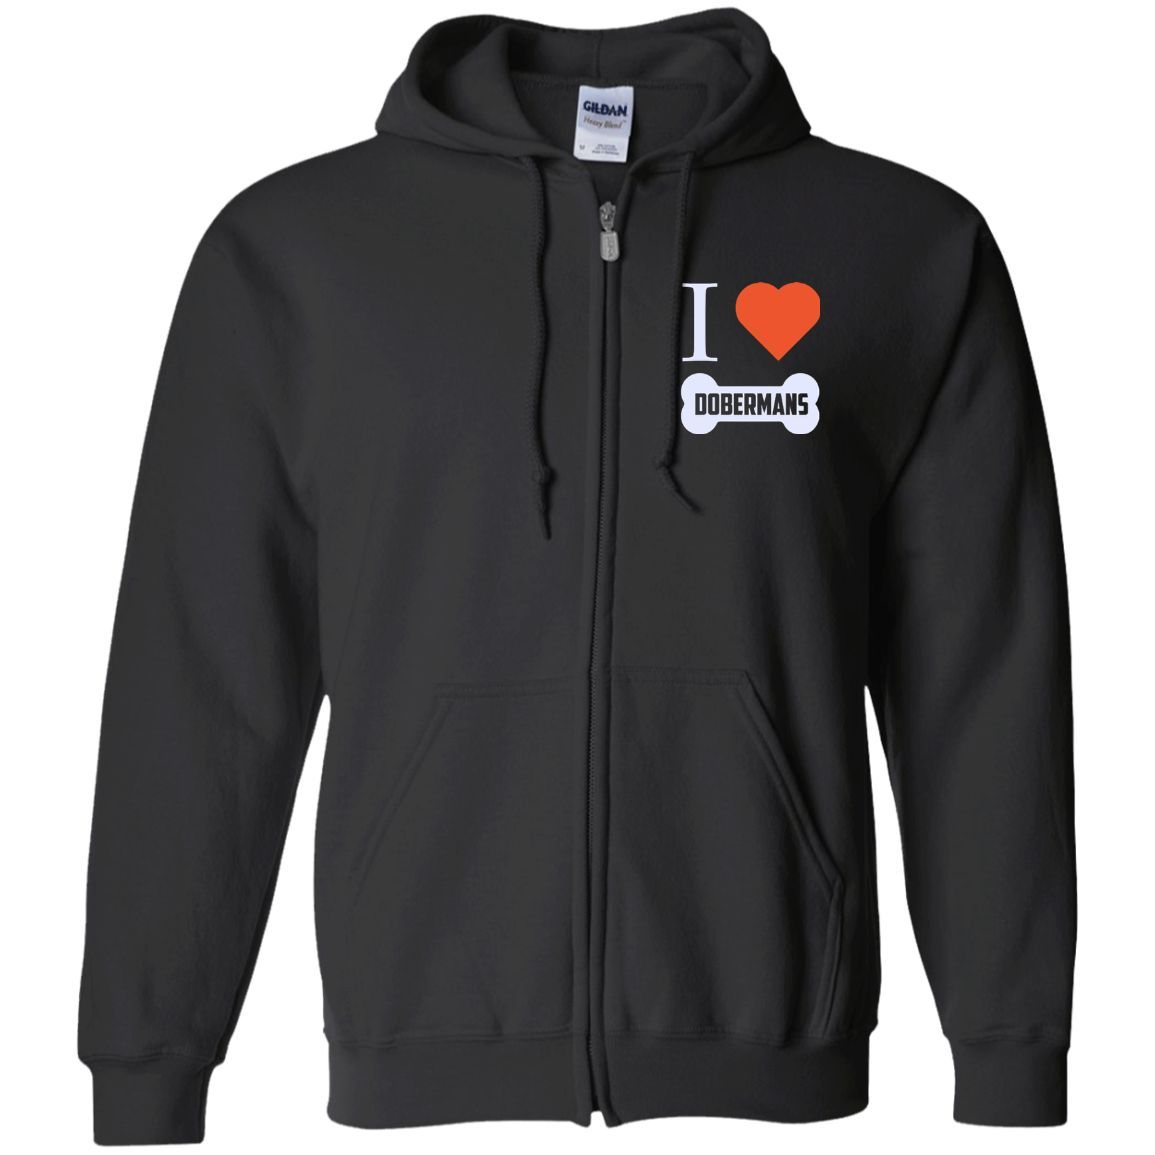 Doberman - I LOVE MY DOBERMAN (BONE DESIGN) - Embroidered Zip Up Hooded Sweatshirt